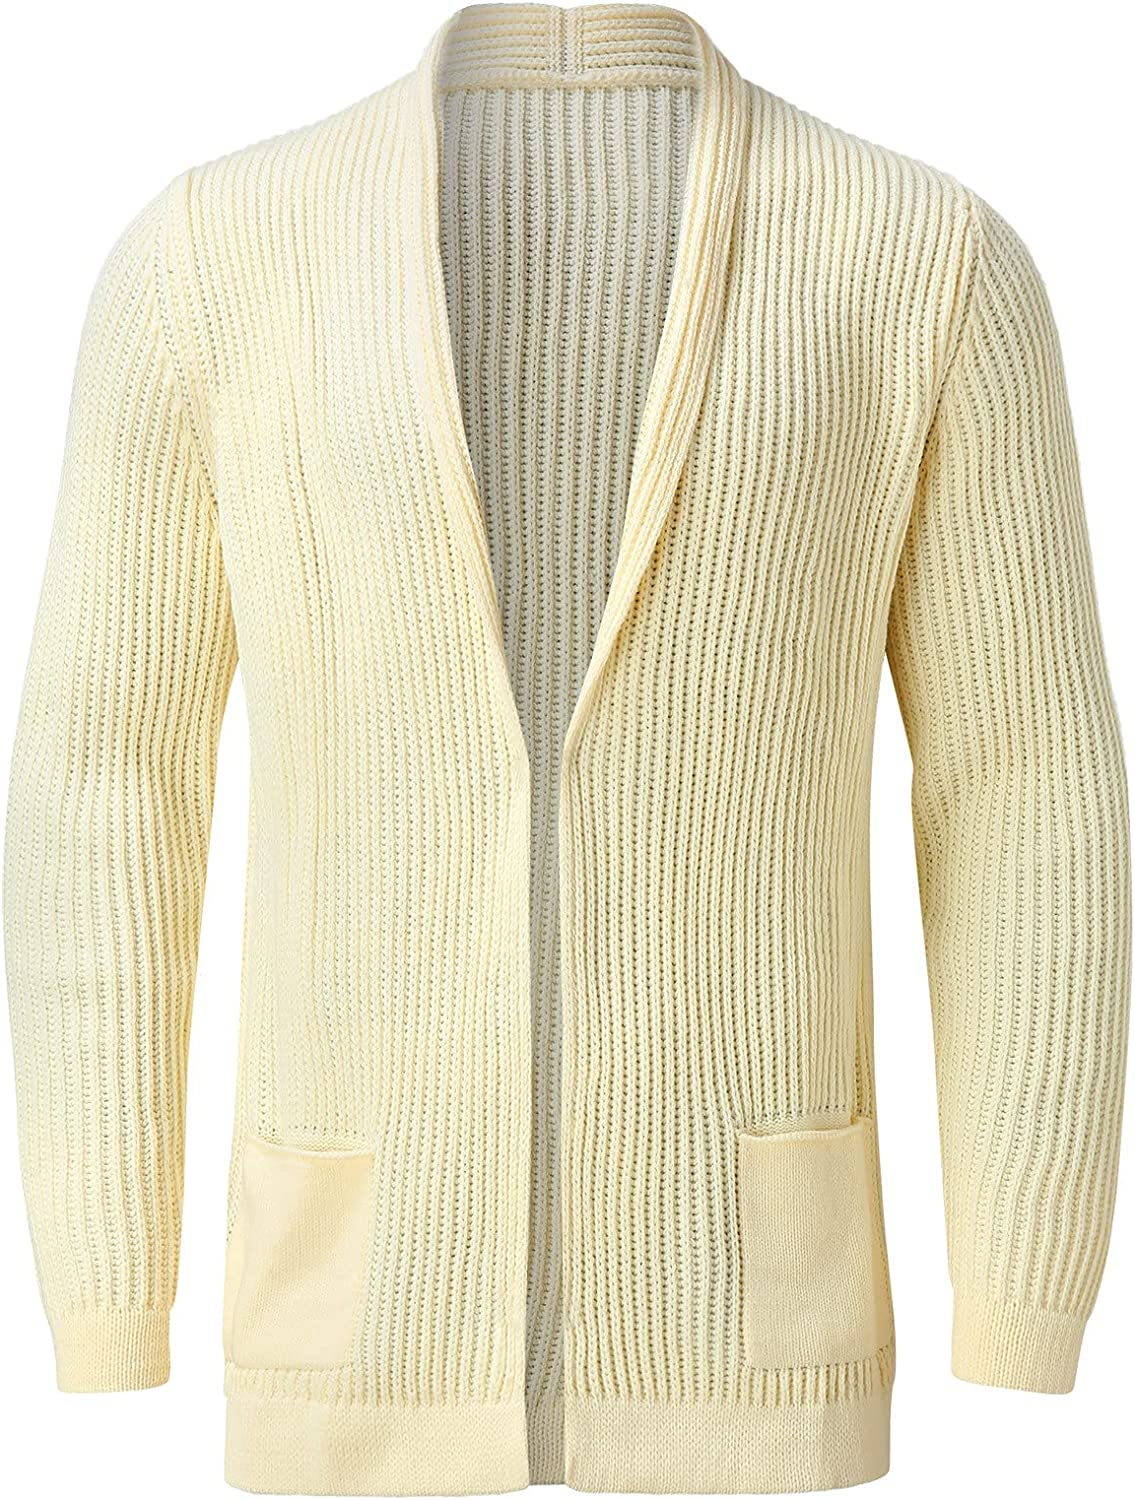 PAOGE Men's Autumn and Winter Long Sleeve Pullover Solid Cardigan Sweater Coat Blouse 2021